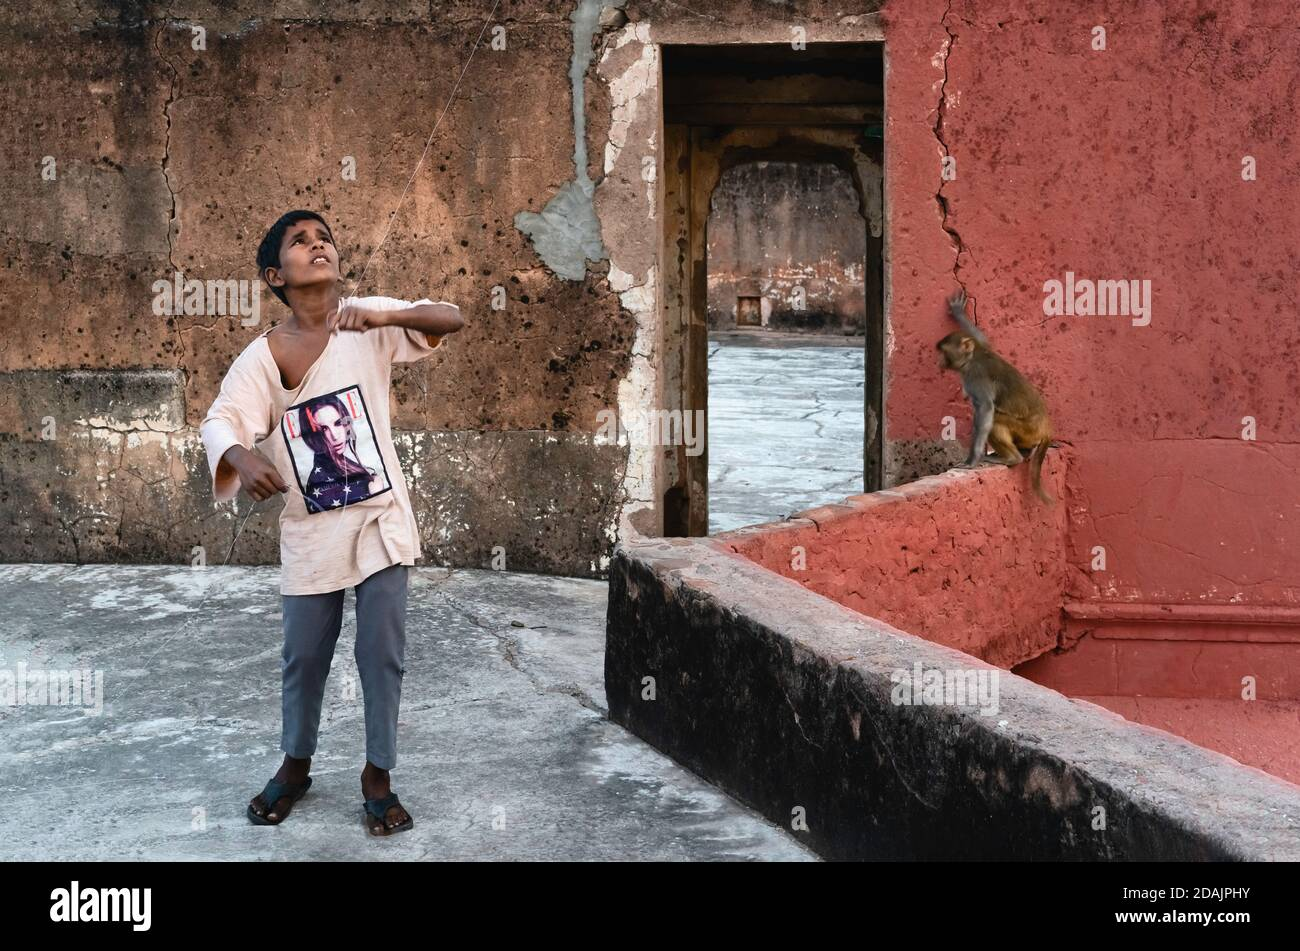 Young boy surrounded by ruins on rooftop flying kite (not in view) at dusk on November 09, 2019 in Jaipur, Rajasthan, India. Stock Photo